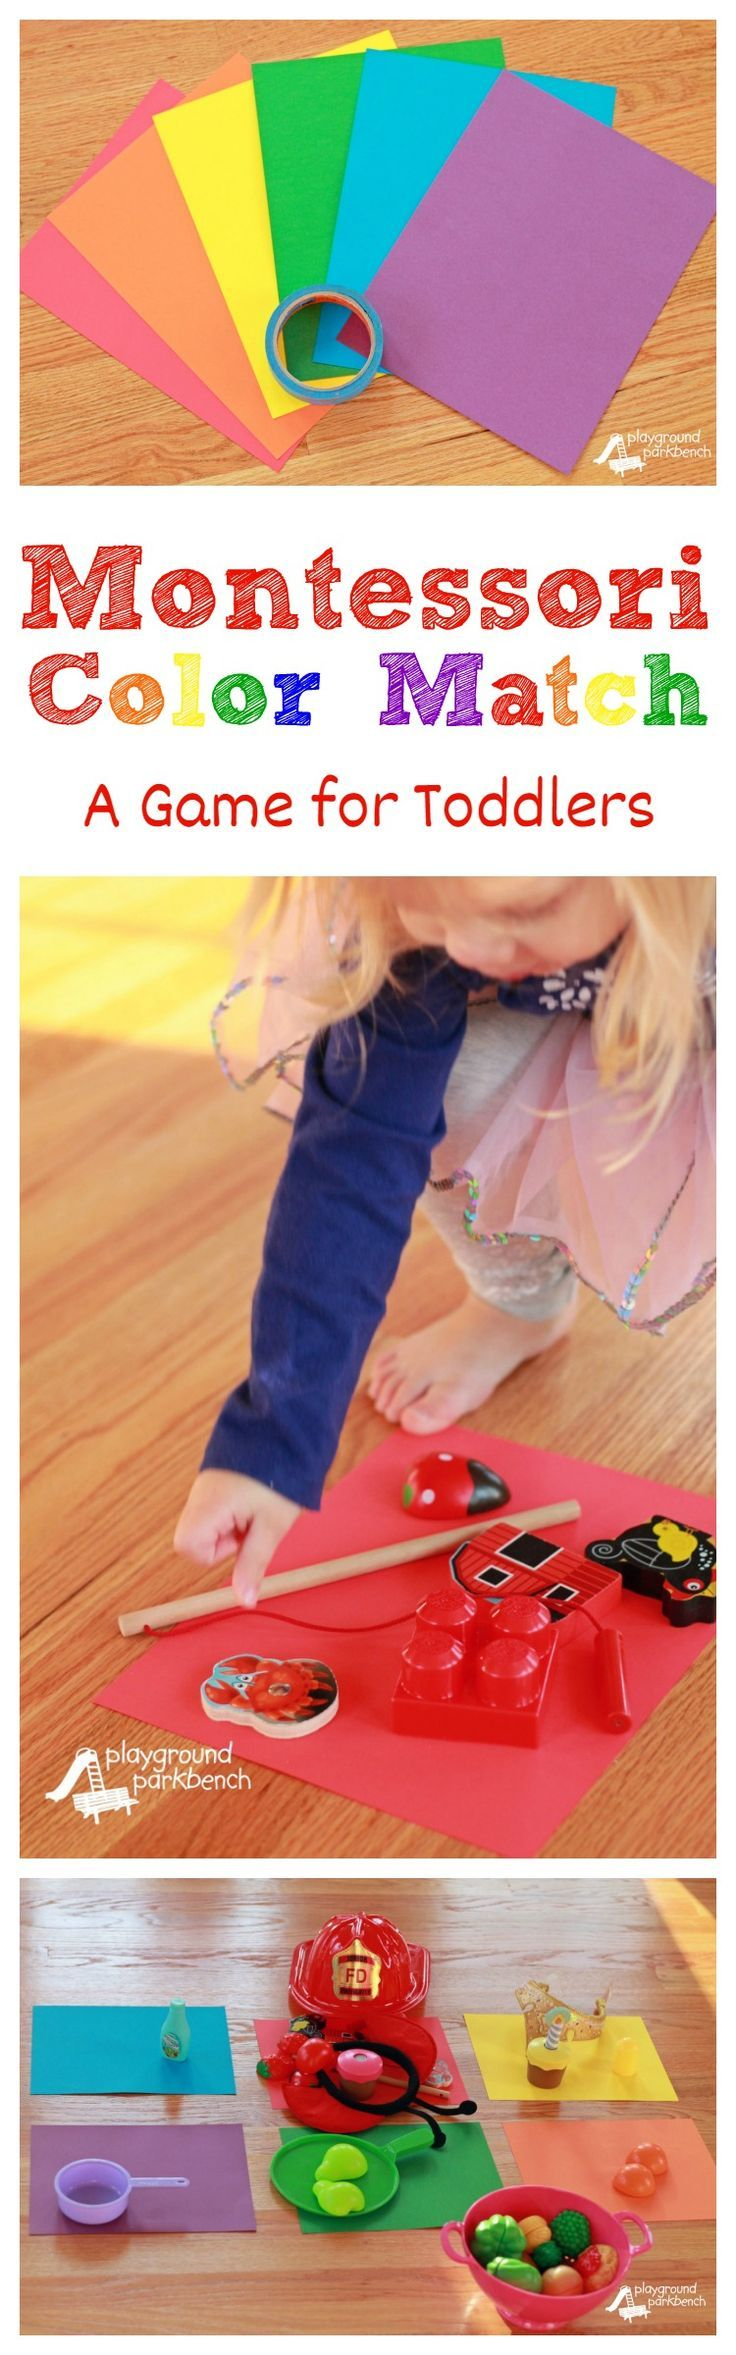 Color games for toddlers - Montessori Color Match An Easy Game For Toddlers Teach Your Toddler To Discern And